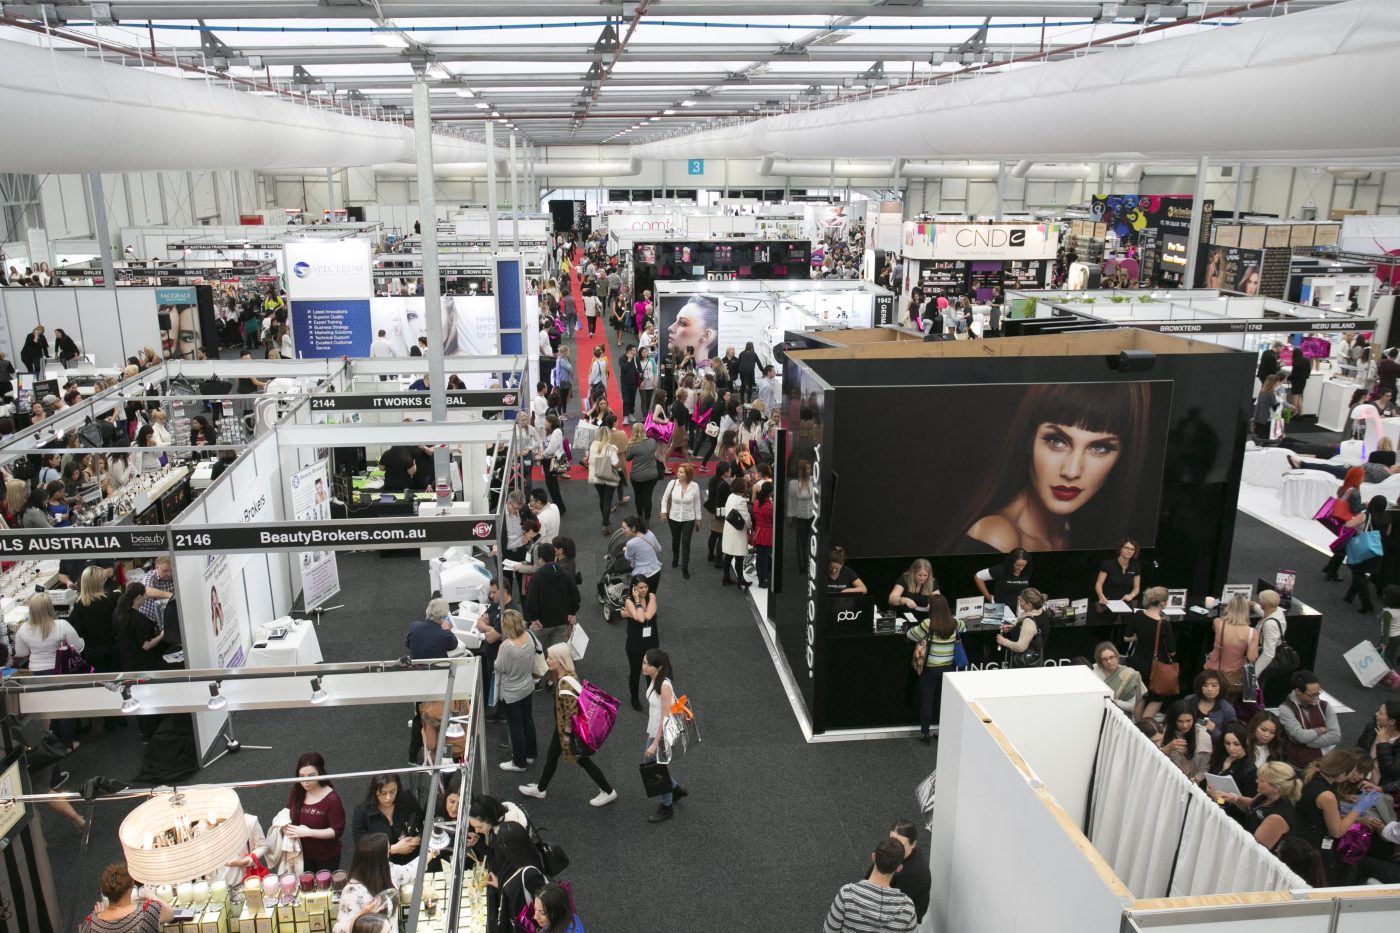 expo beauty australia sydney exhibition trade spot couturing fantastic pass years